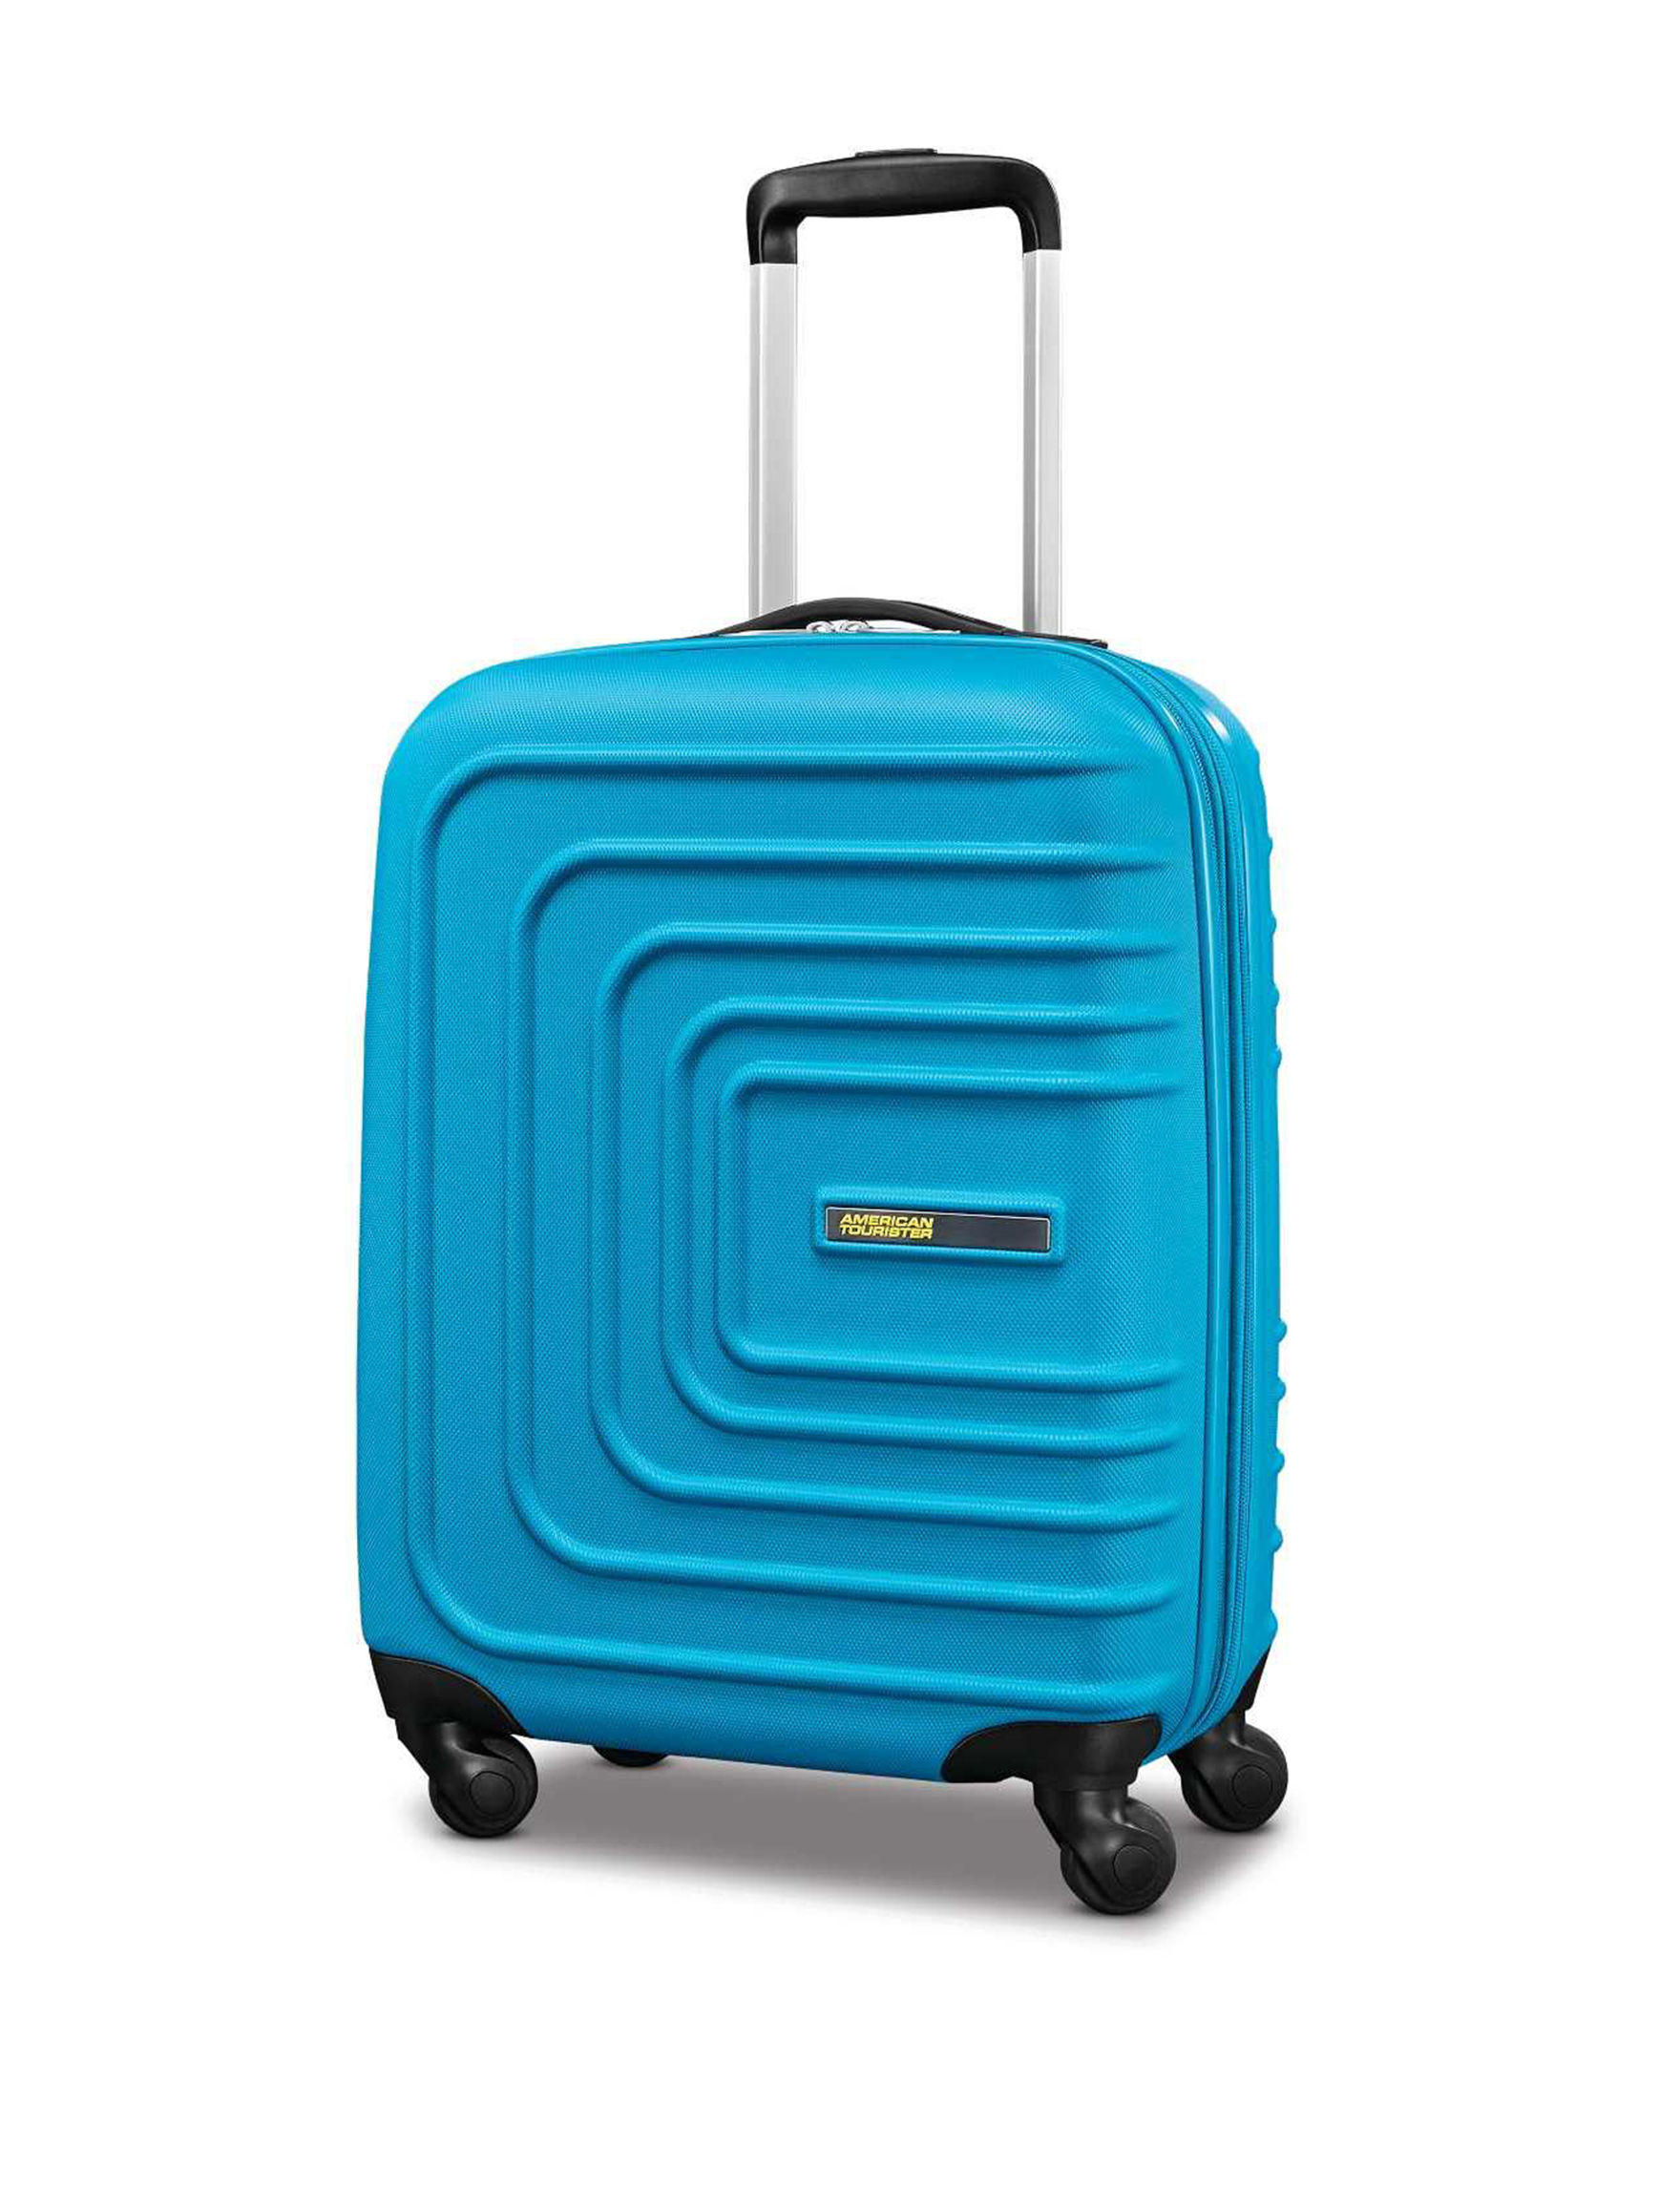 American Tourister Blue Hardside Upright Spinners